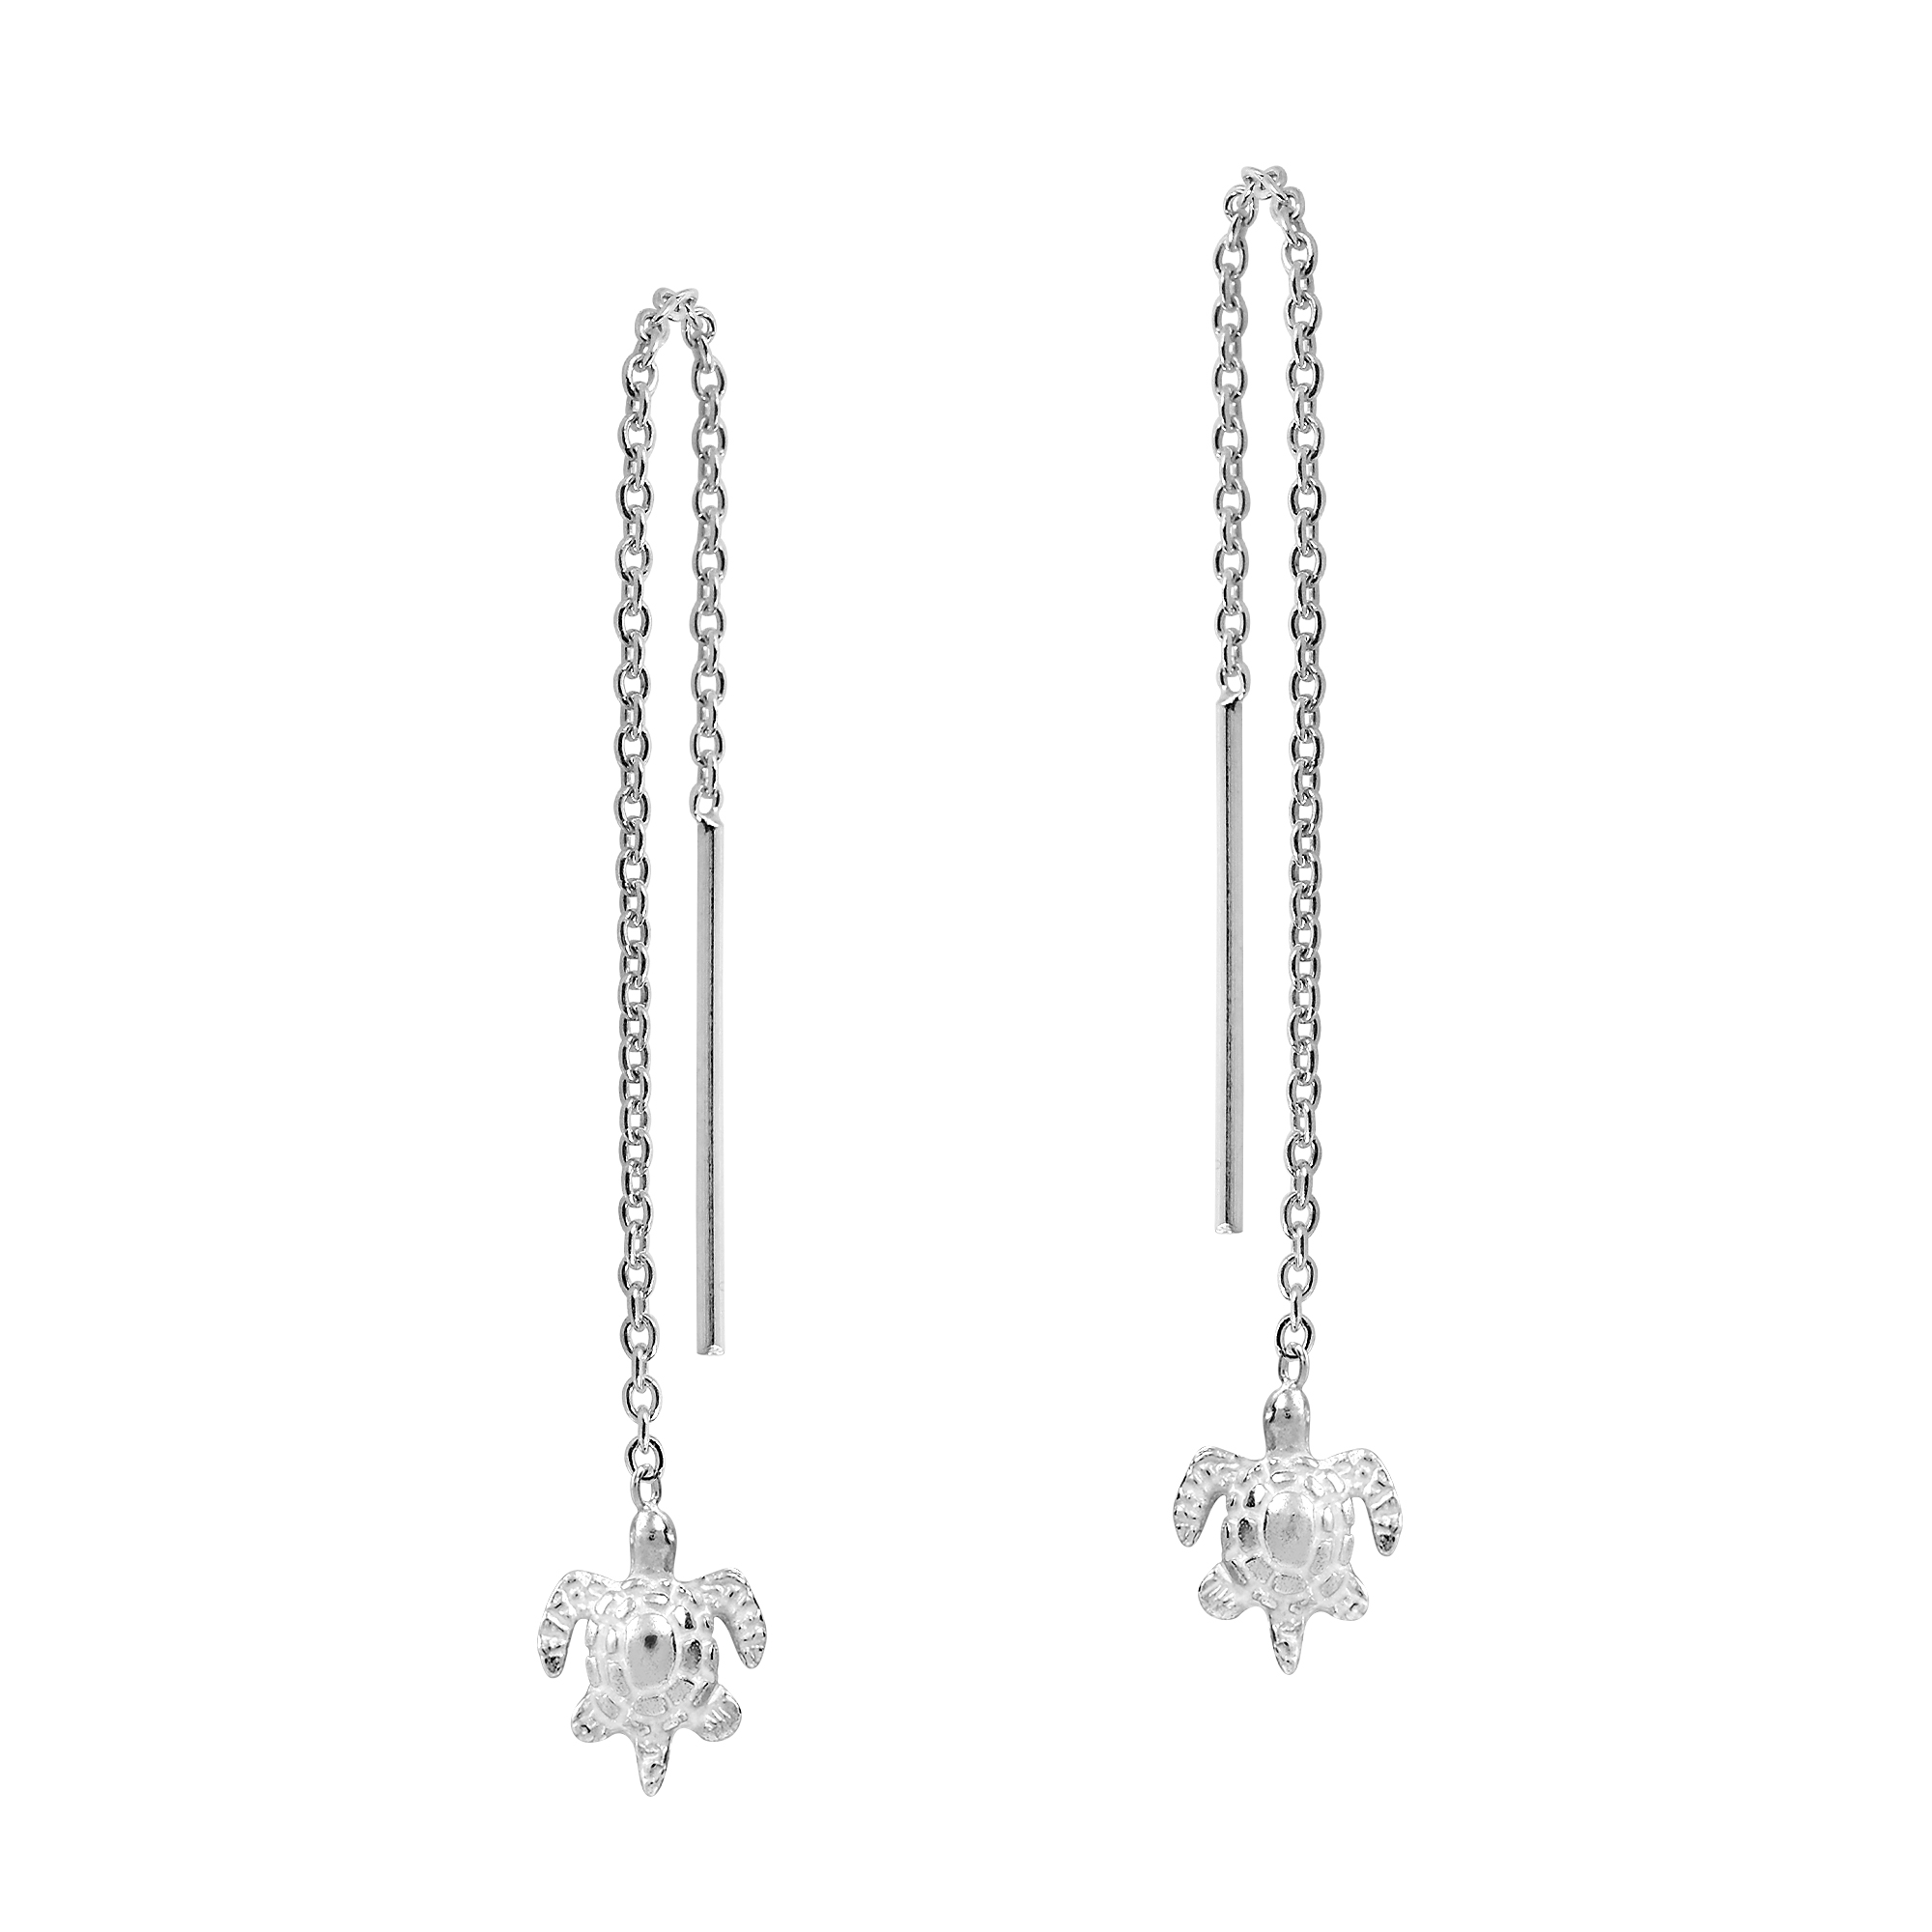 Sleek And Alluring These Earrings Feature Cute Sea Turtle Charms That Dangle From A Sterling Silver Chain Upon Slide Thru Post